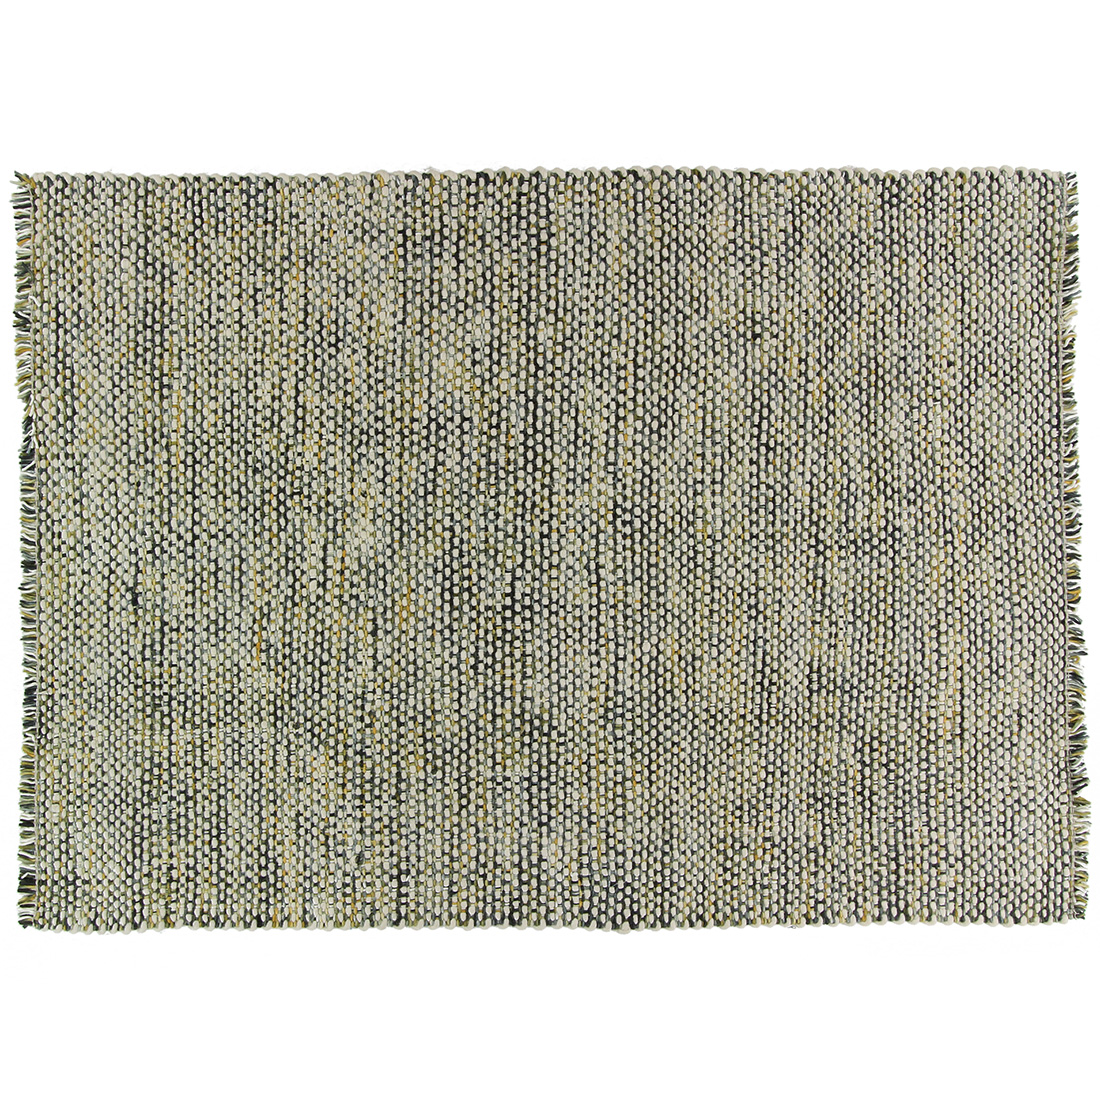 Vloerkleed Brinker Sunshine Gold Green Multi | 170 x 230 cm